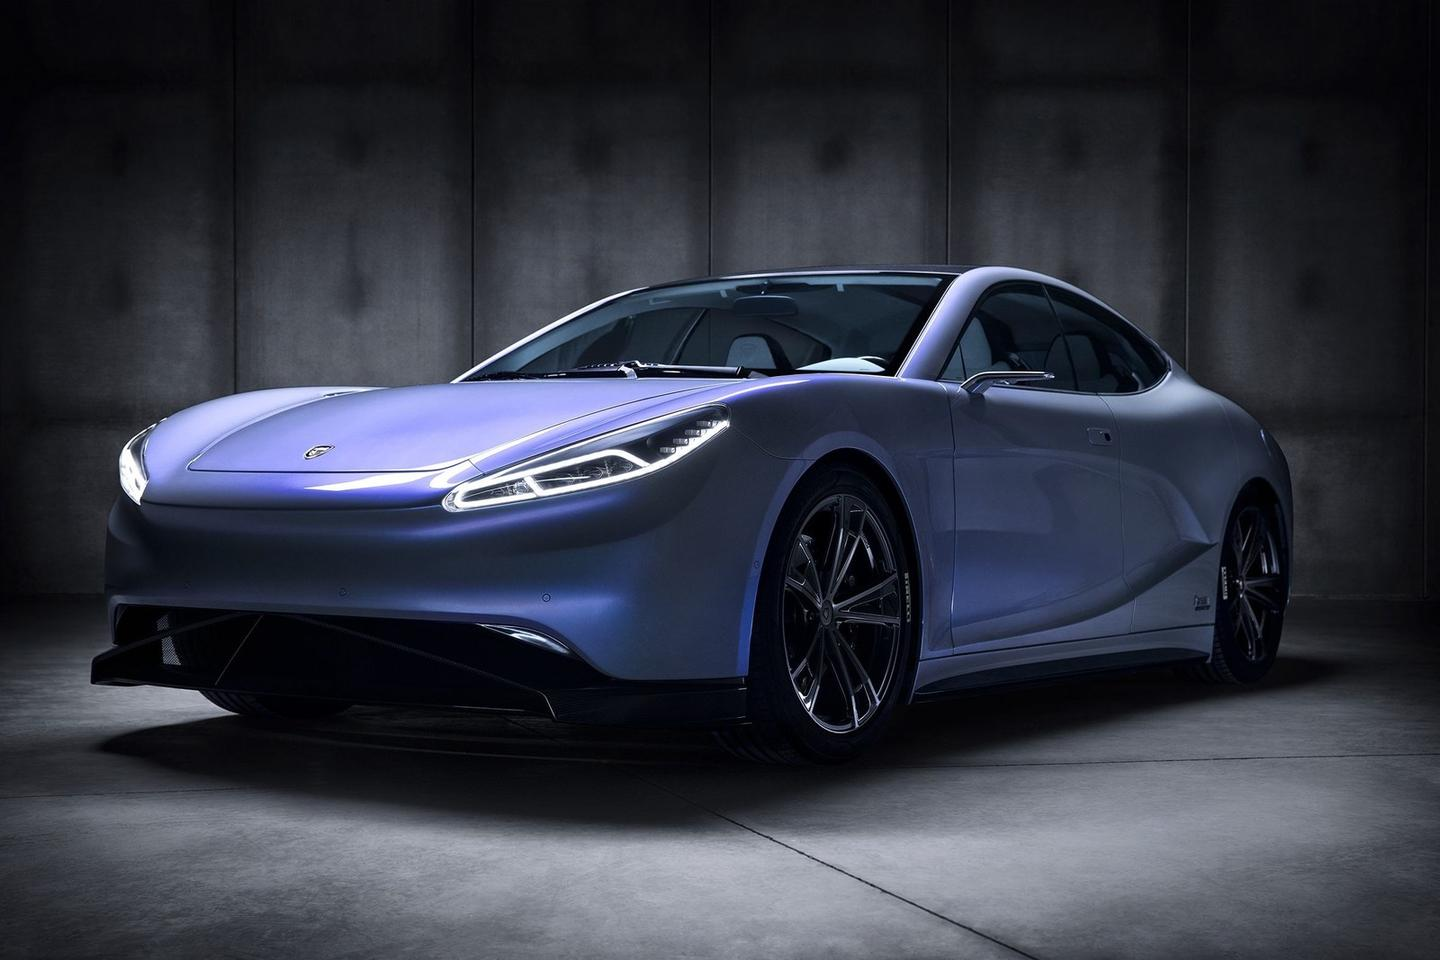 With help from the IDEA Institute, LVCHI has created a sleek, sexy electric sedan